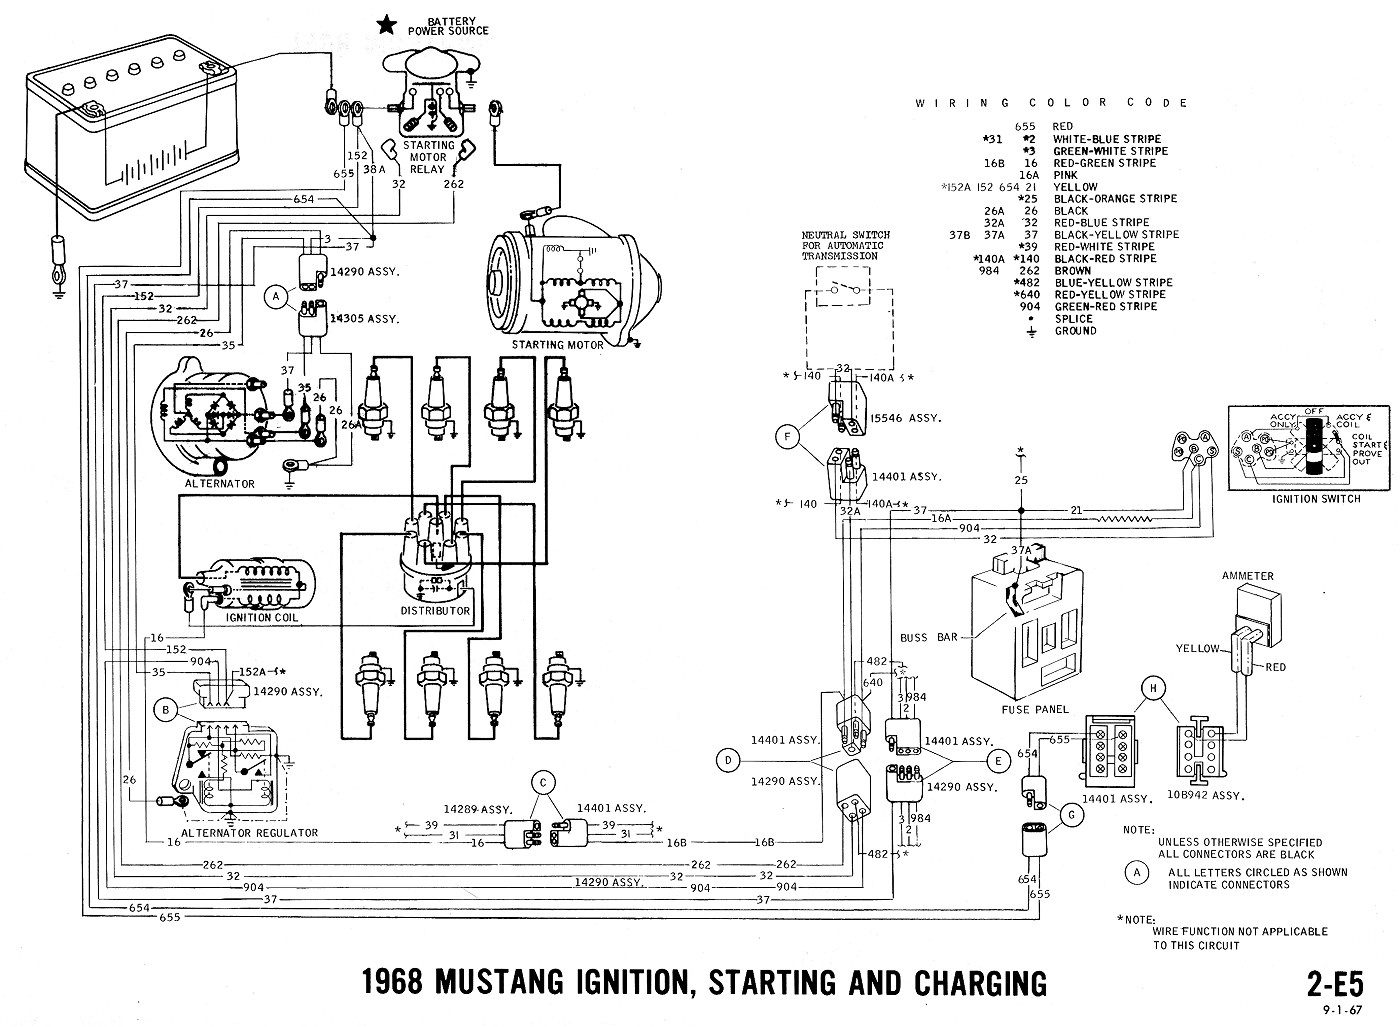 Ford Mustang Wiring - wiring diagrams schematics